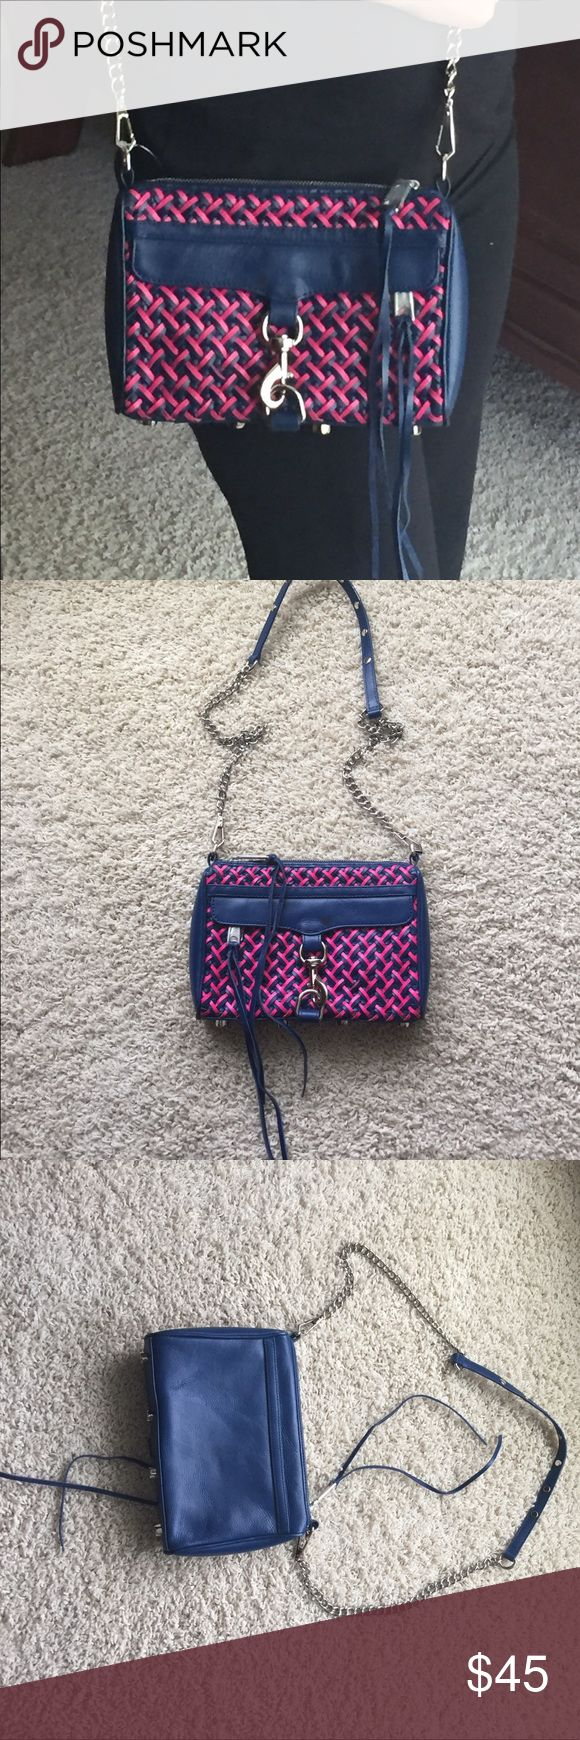 Rebecca Minkoff mini Mac Rebecca Minkoff mini Mac bleu and pink leather with detachable/adjustable strap and silver hardware in good condition it has some flaws as showed on the pictures otherwise it's still good Rebecca Minkoff Bags Crossbody Bags